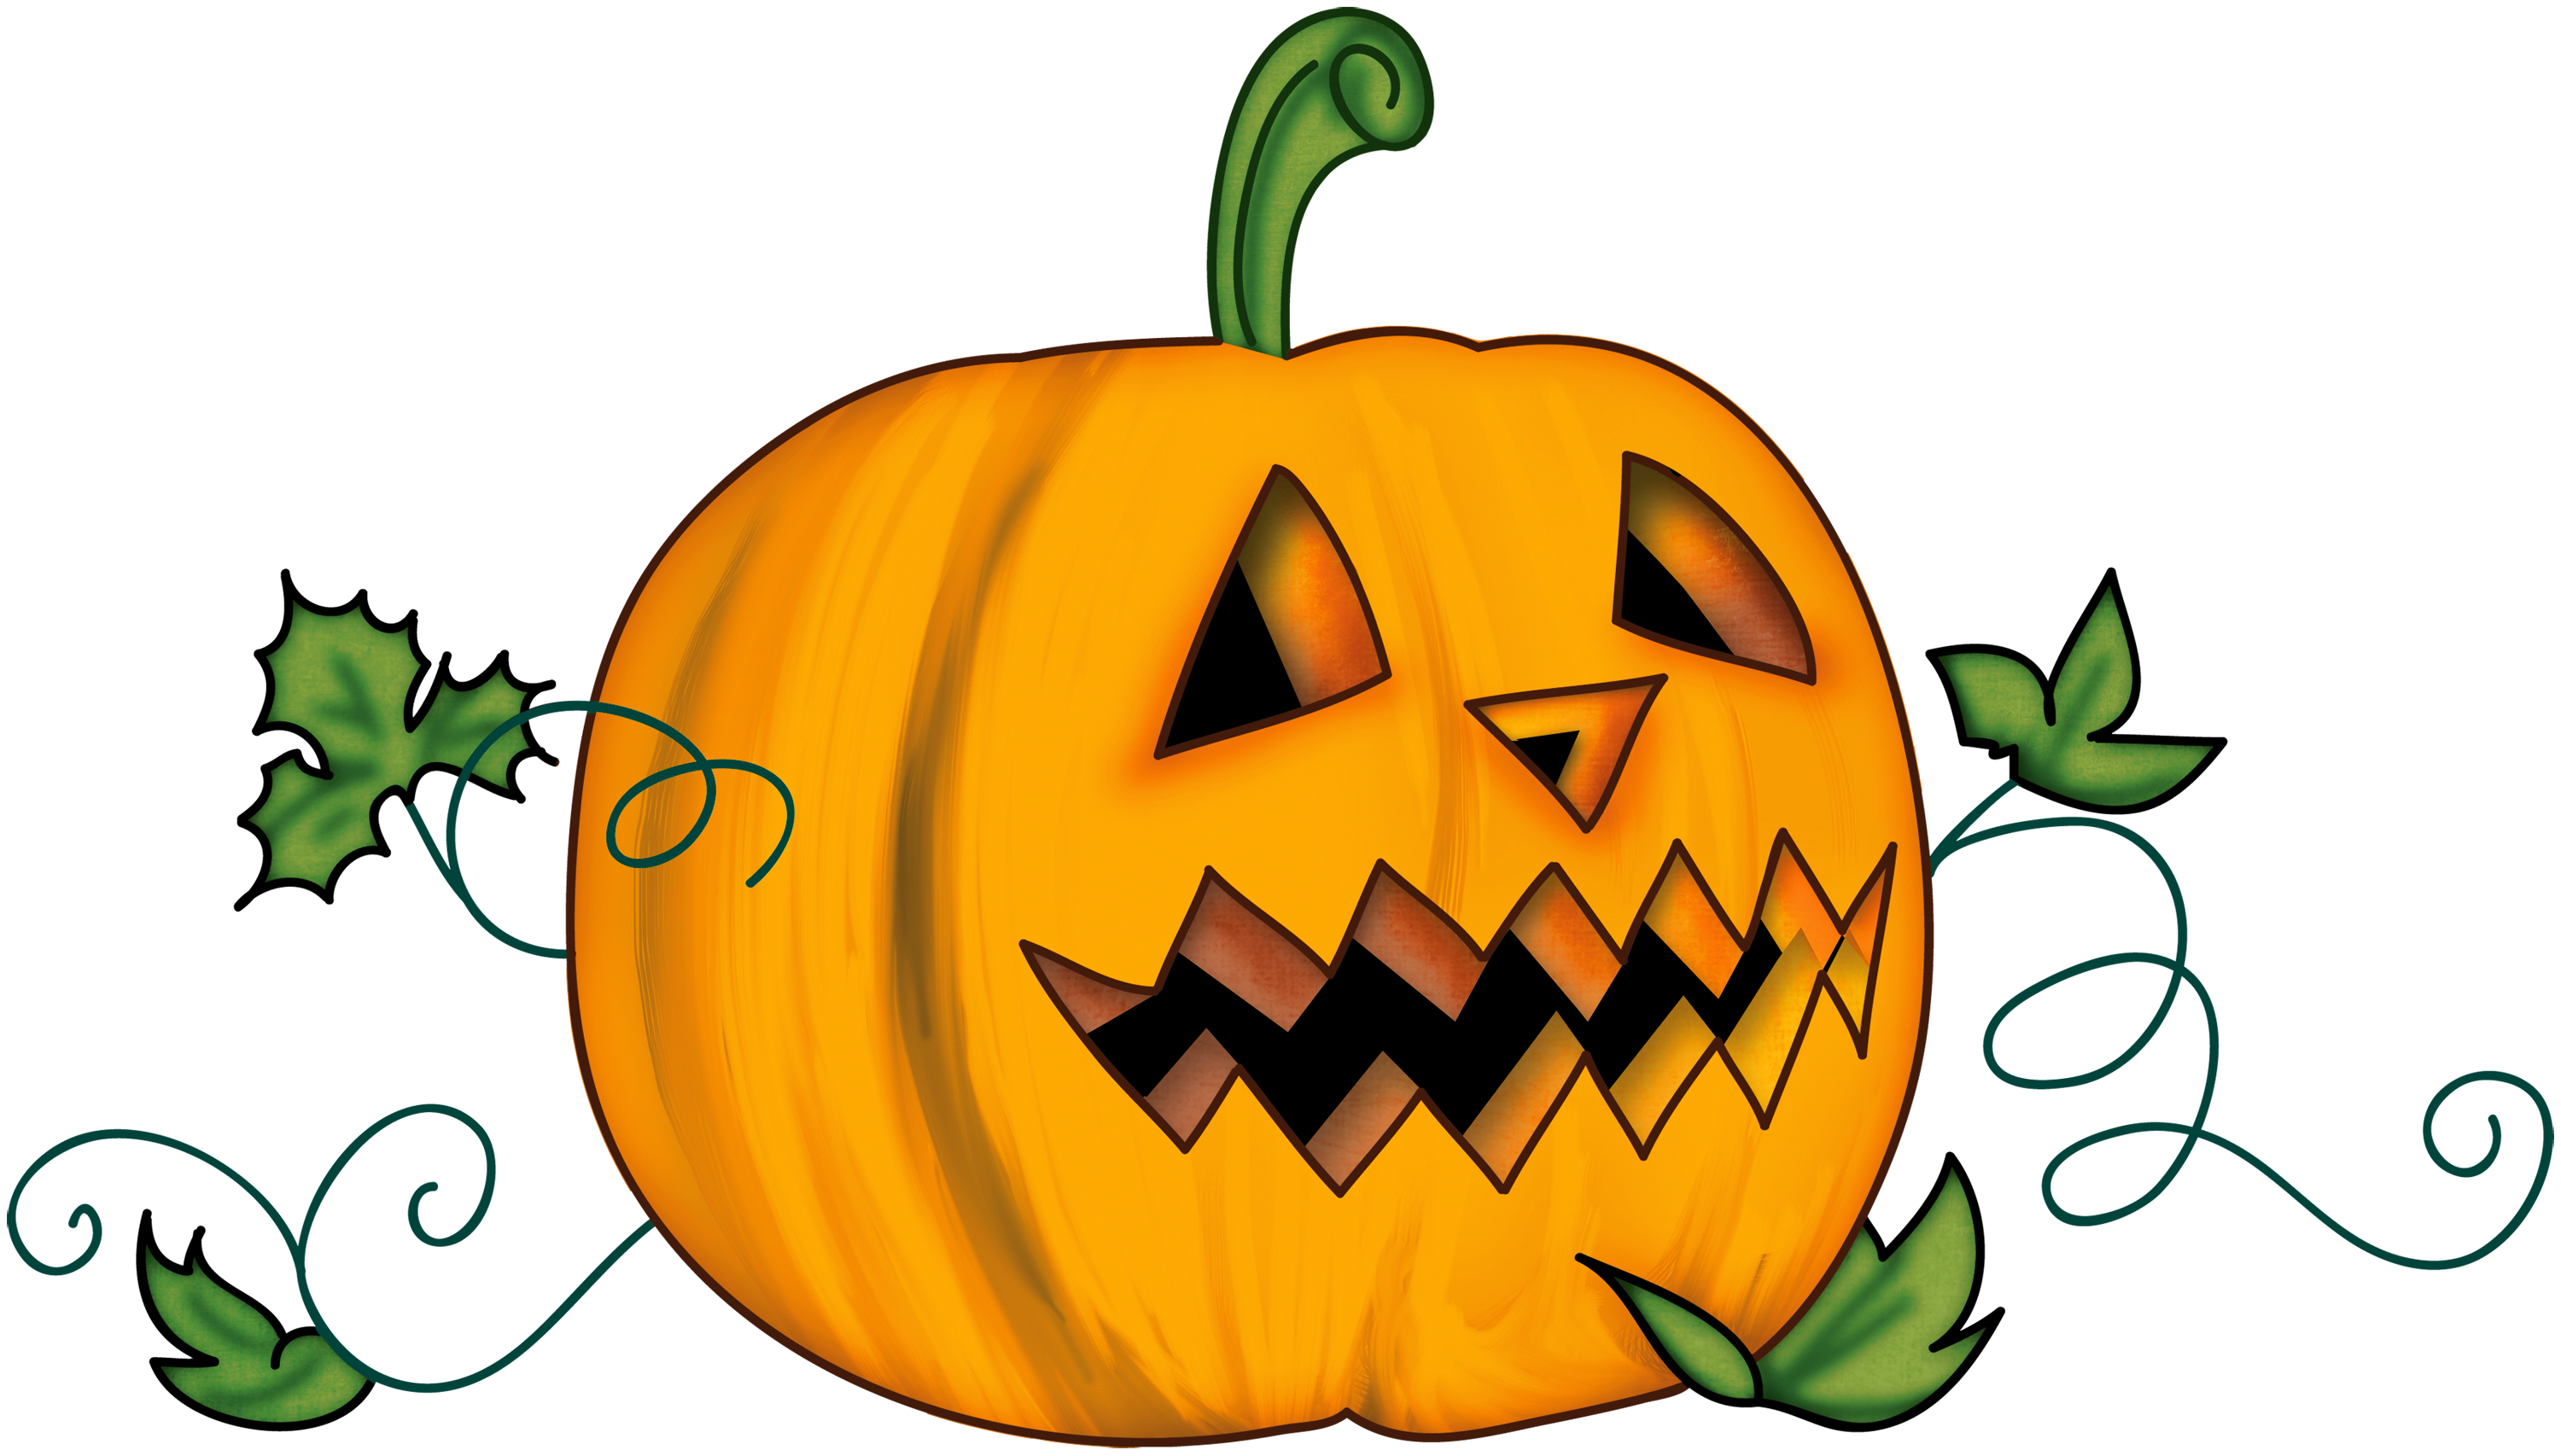 Pumpkins clipart happy birthday. Halloween creepy pumpkin gallery